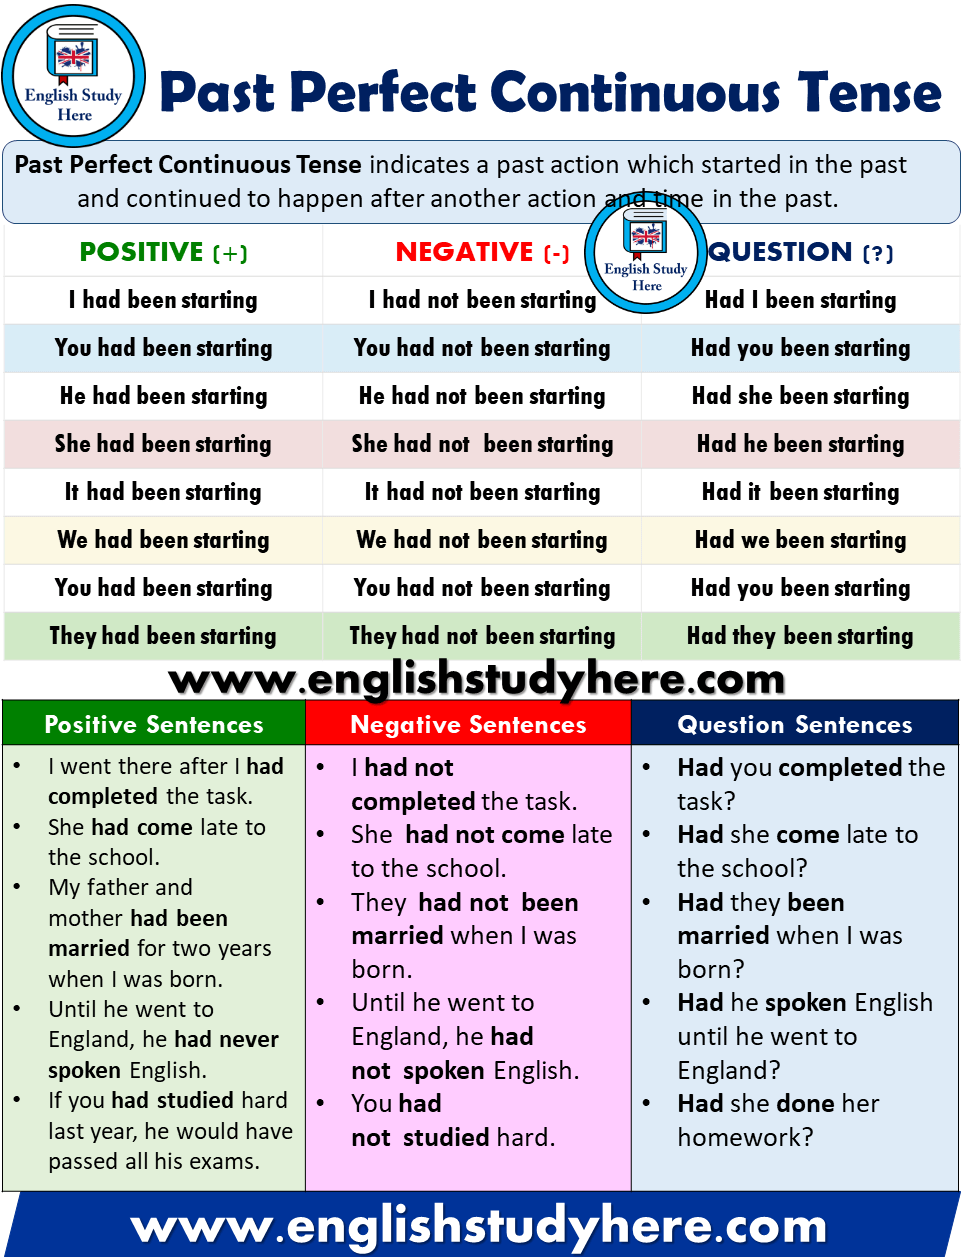 Past Perfect Continuous Tense - Detailed Expression